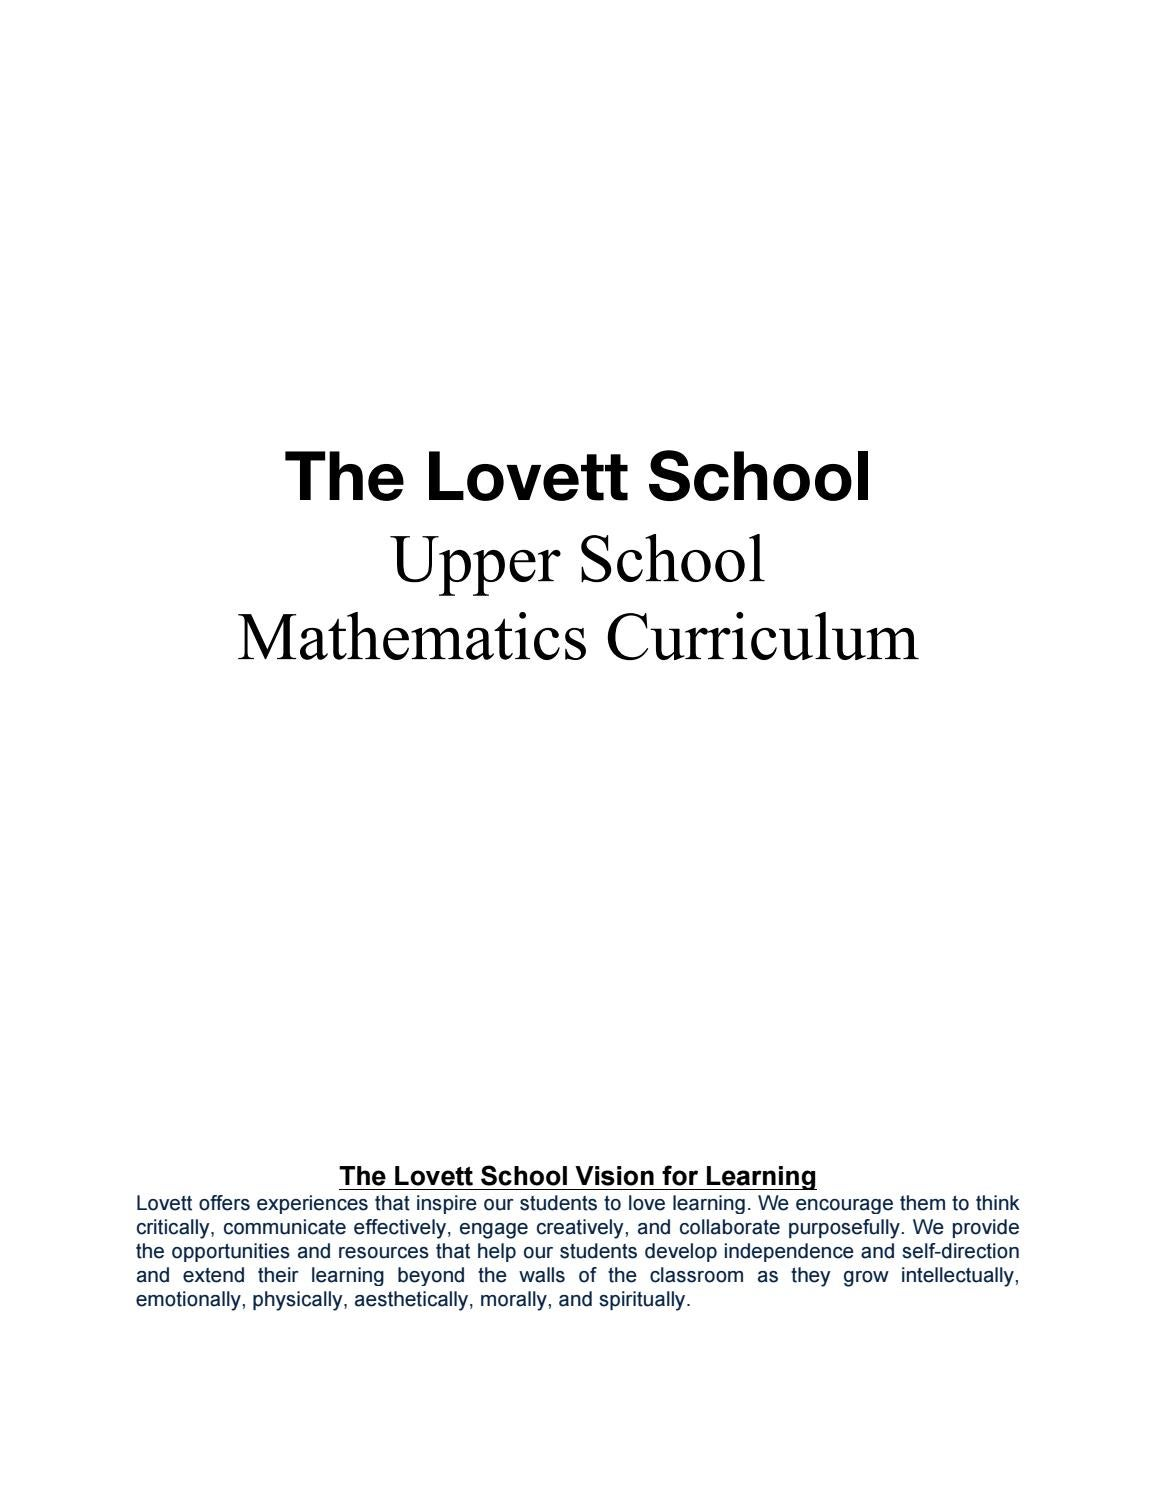 Upper School Curriculum: Math by The Lovett School - issuu